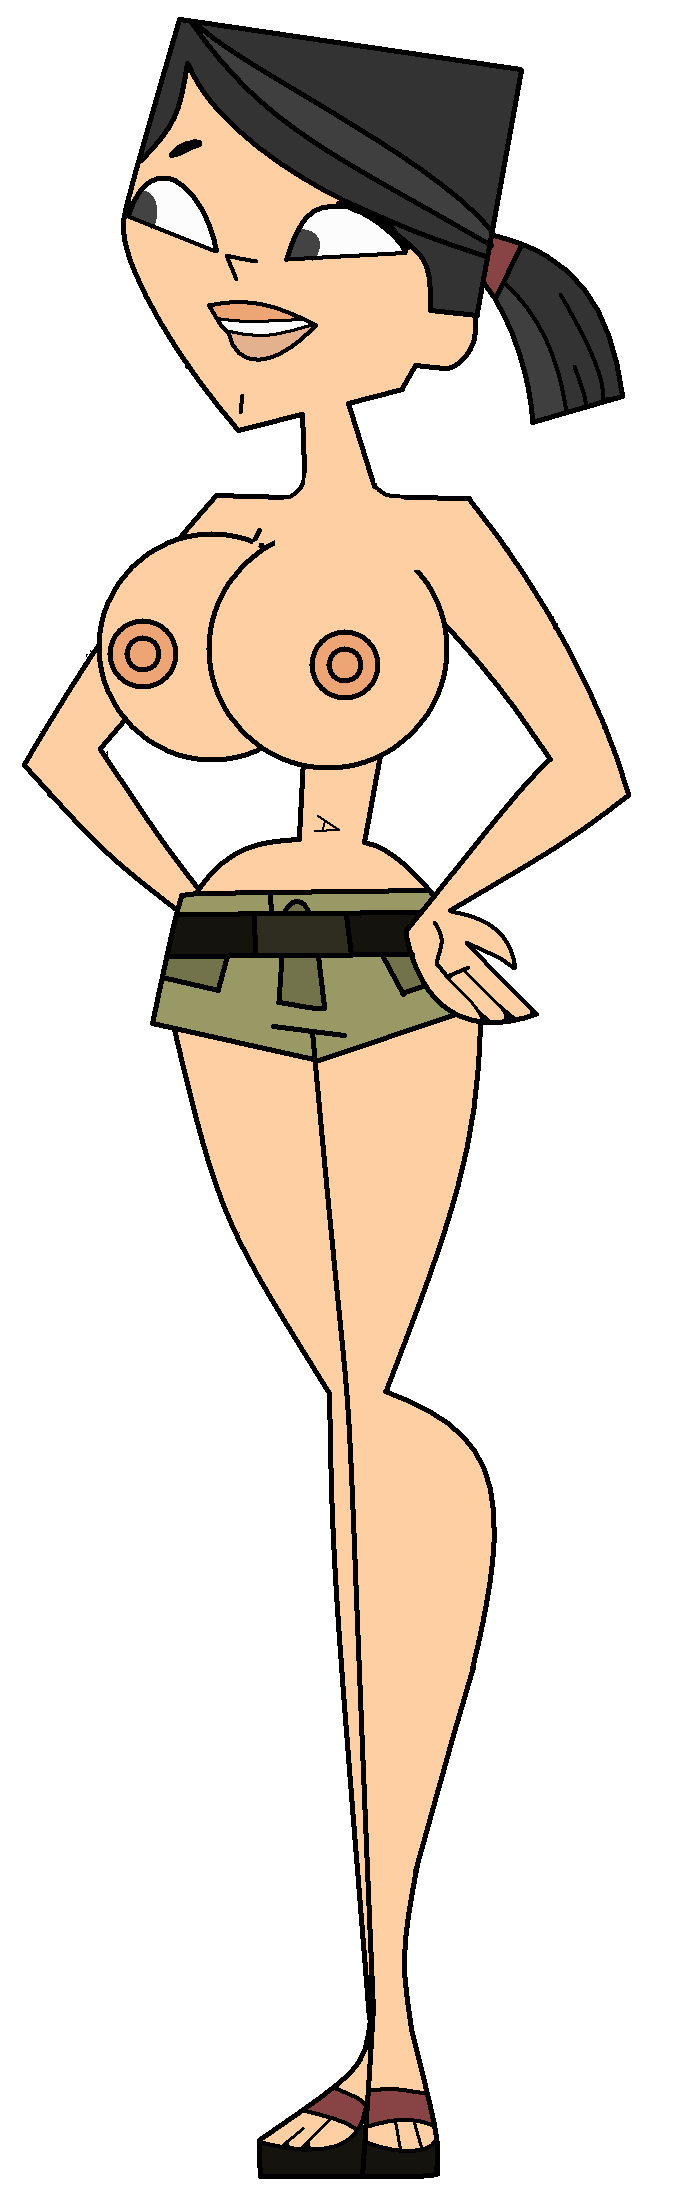 Sexy nude girls from total drama island #2